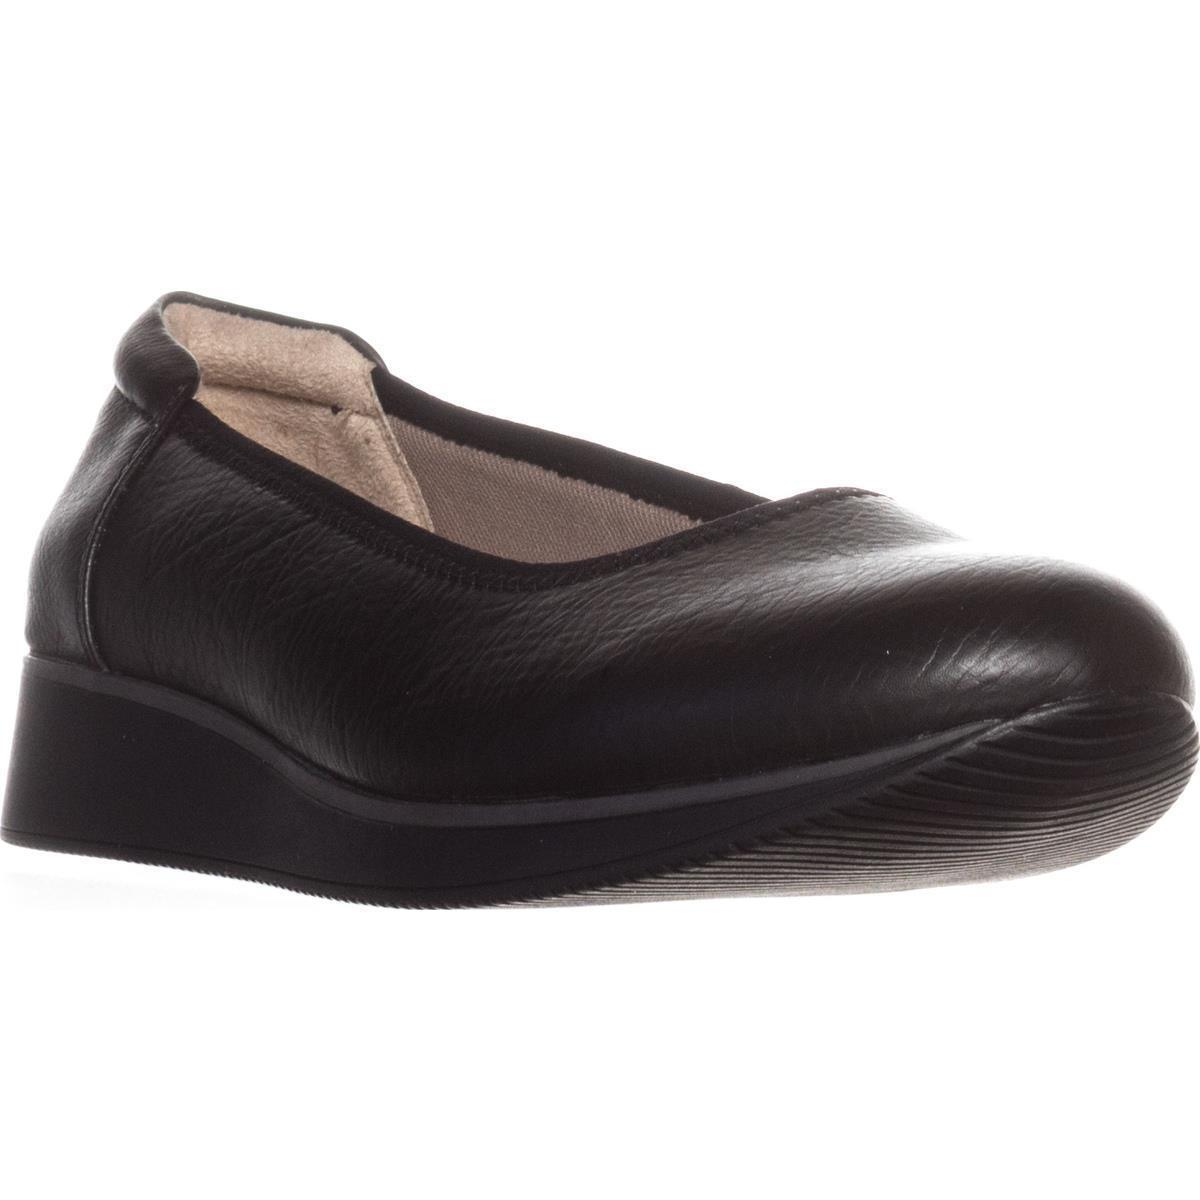 Womens Naturalizer Fancie Flat Comfort Loafers, Black by Naturalizer